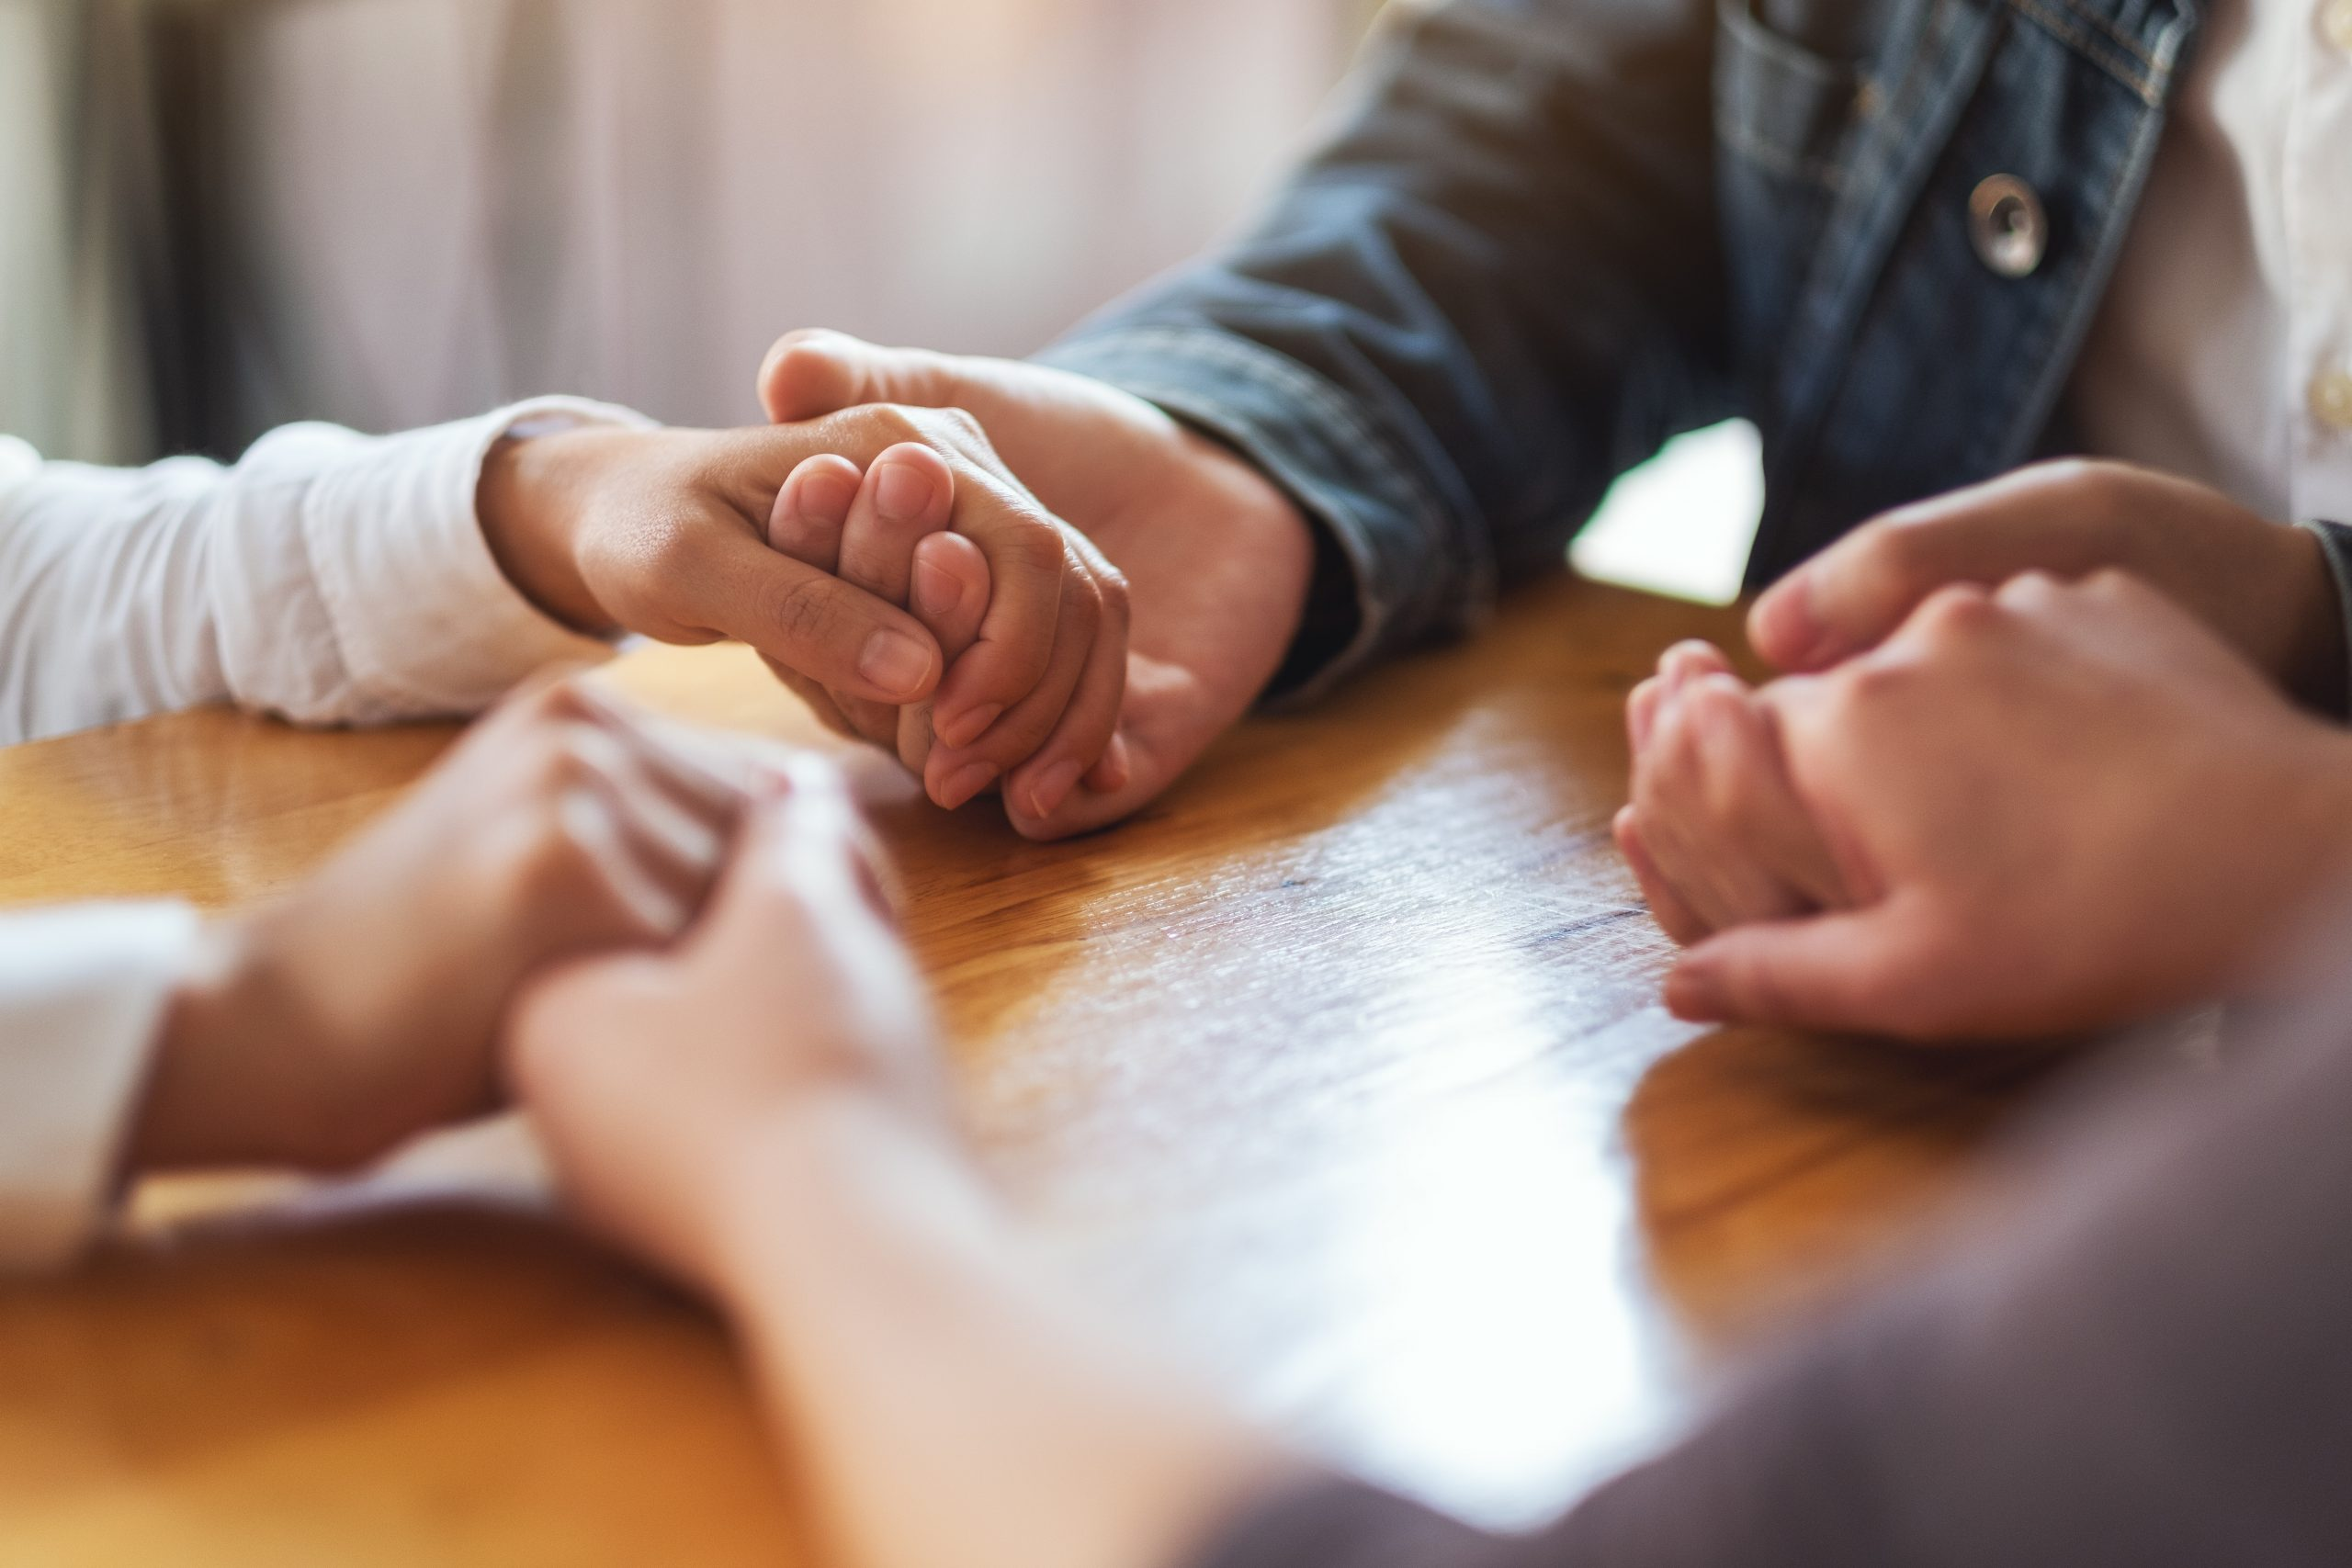 Why rehab aftercare matters in addiction treatment